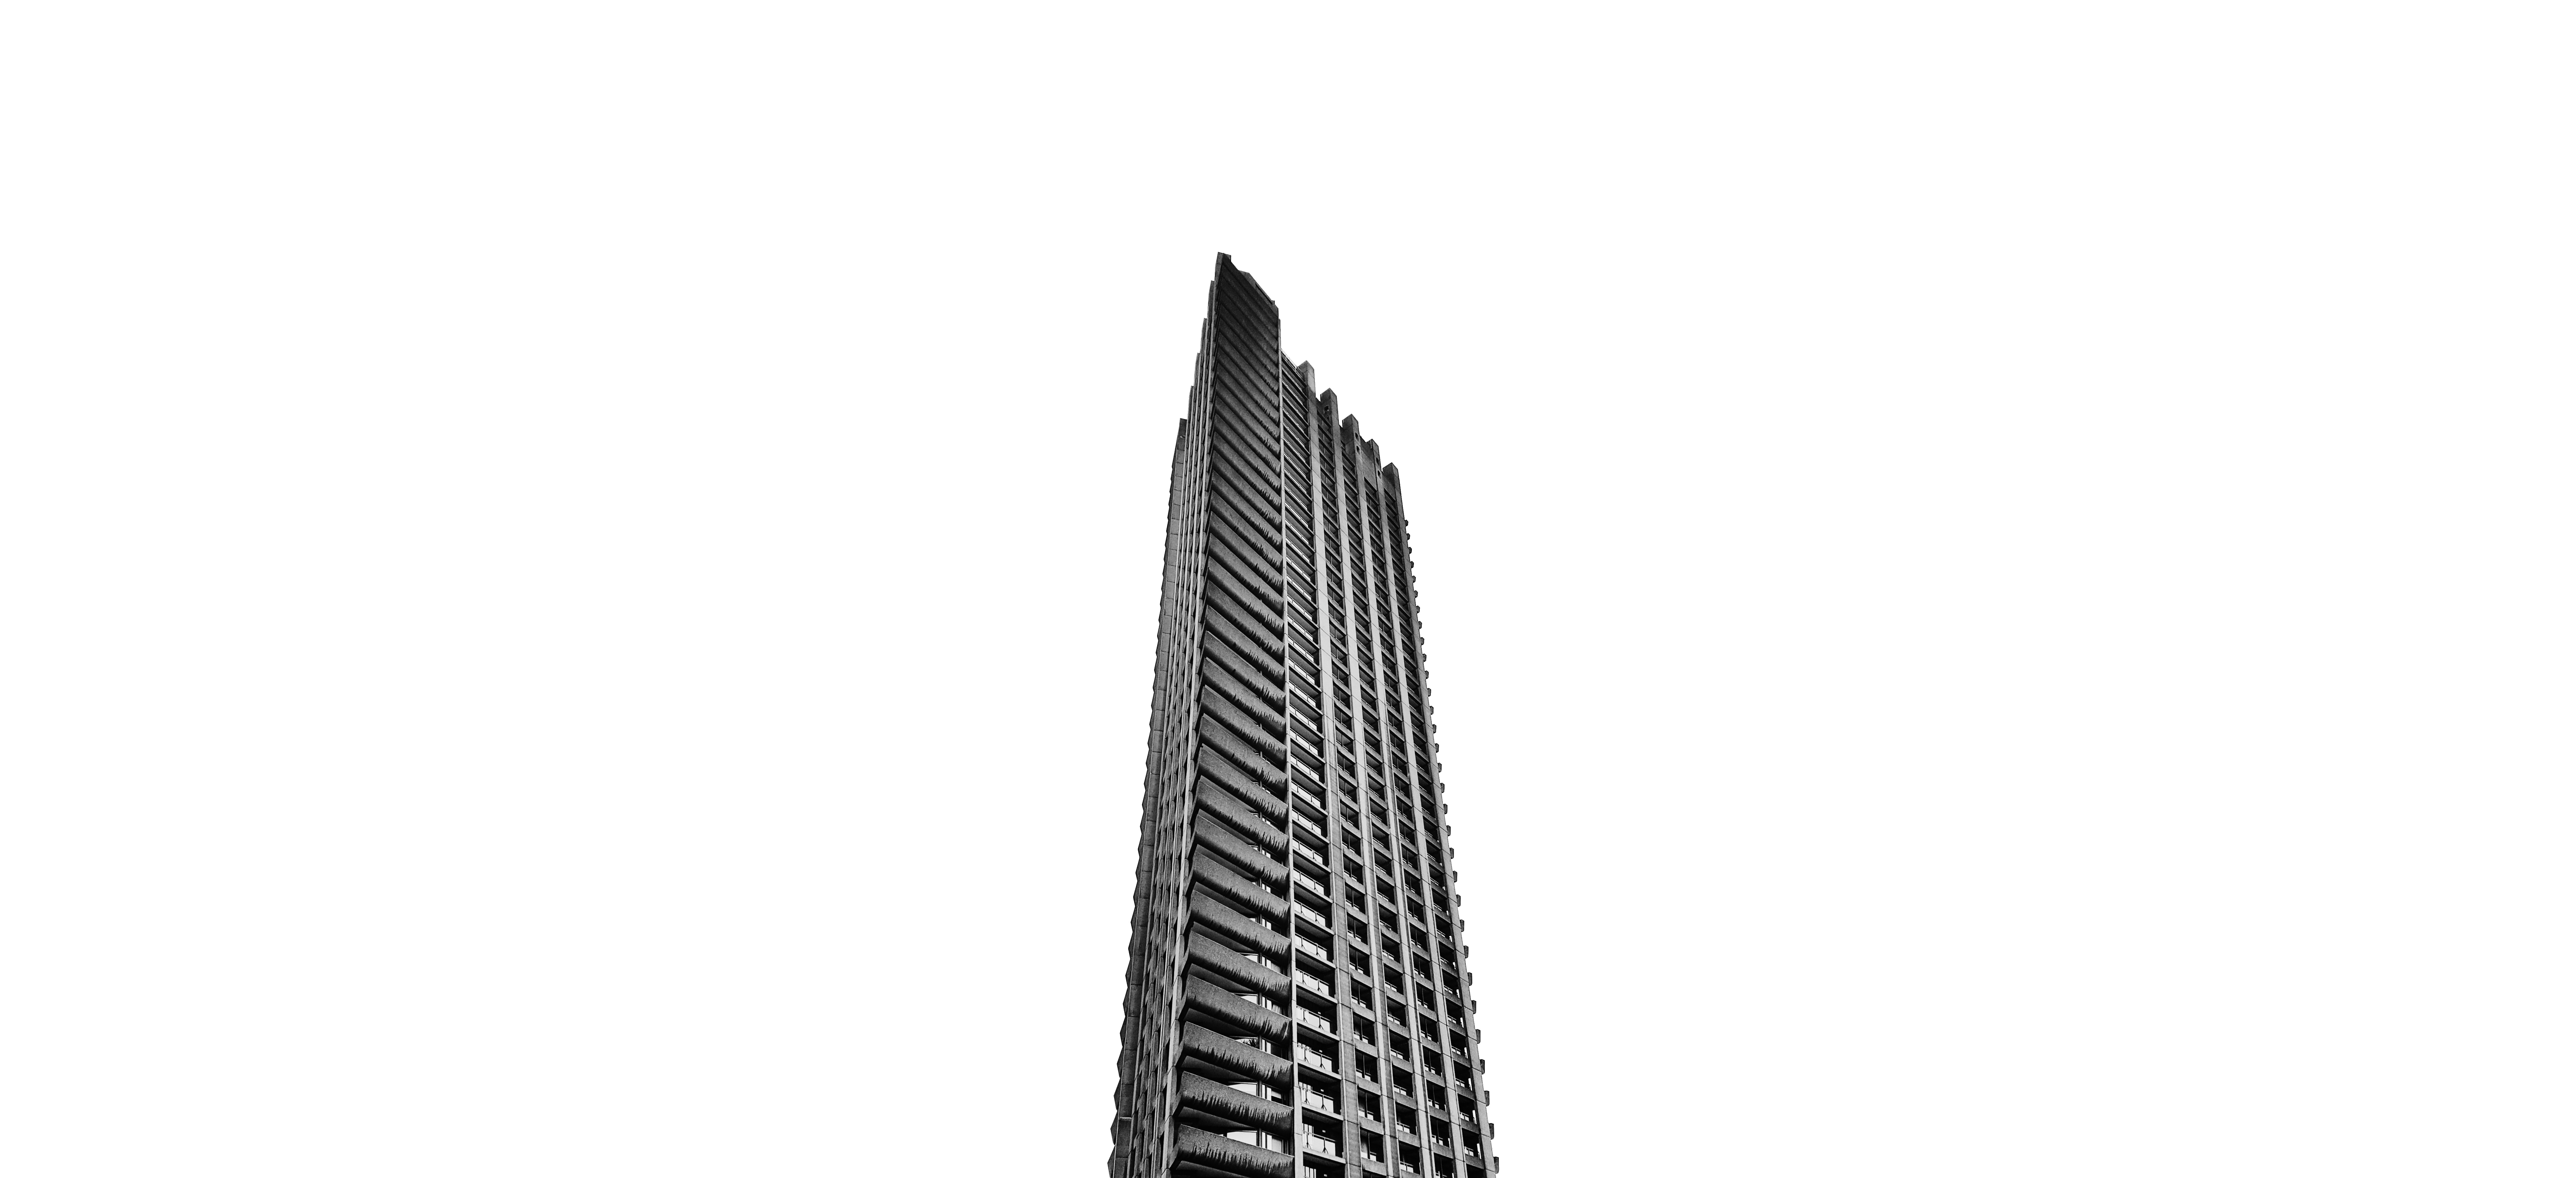 structural shot of gray building under cloudy sky